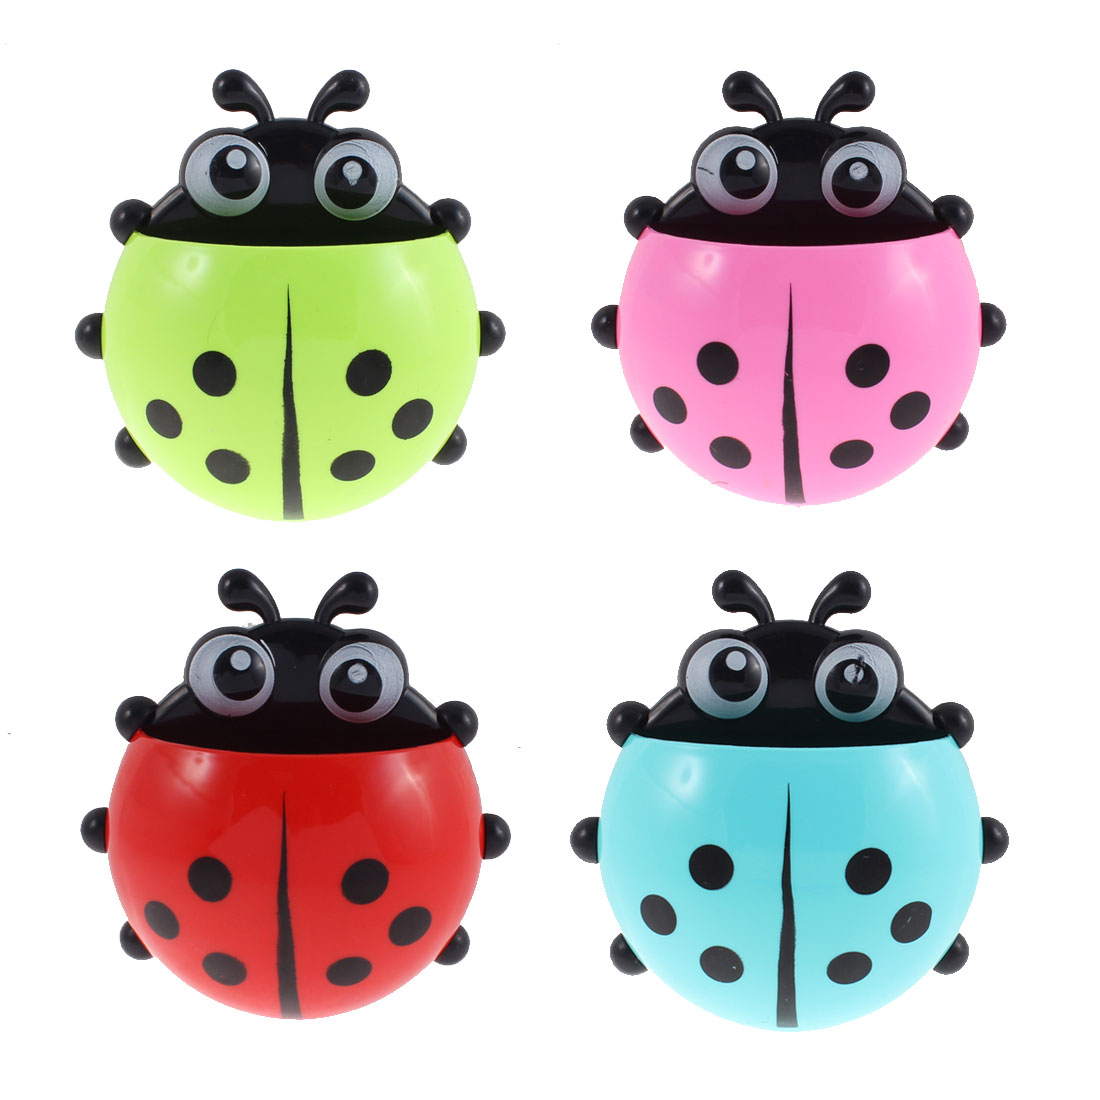 Plastic Ladybird Design Suction Cup Toothbrush Holder Assorted Color 4 Pcs